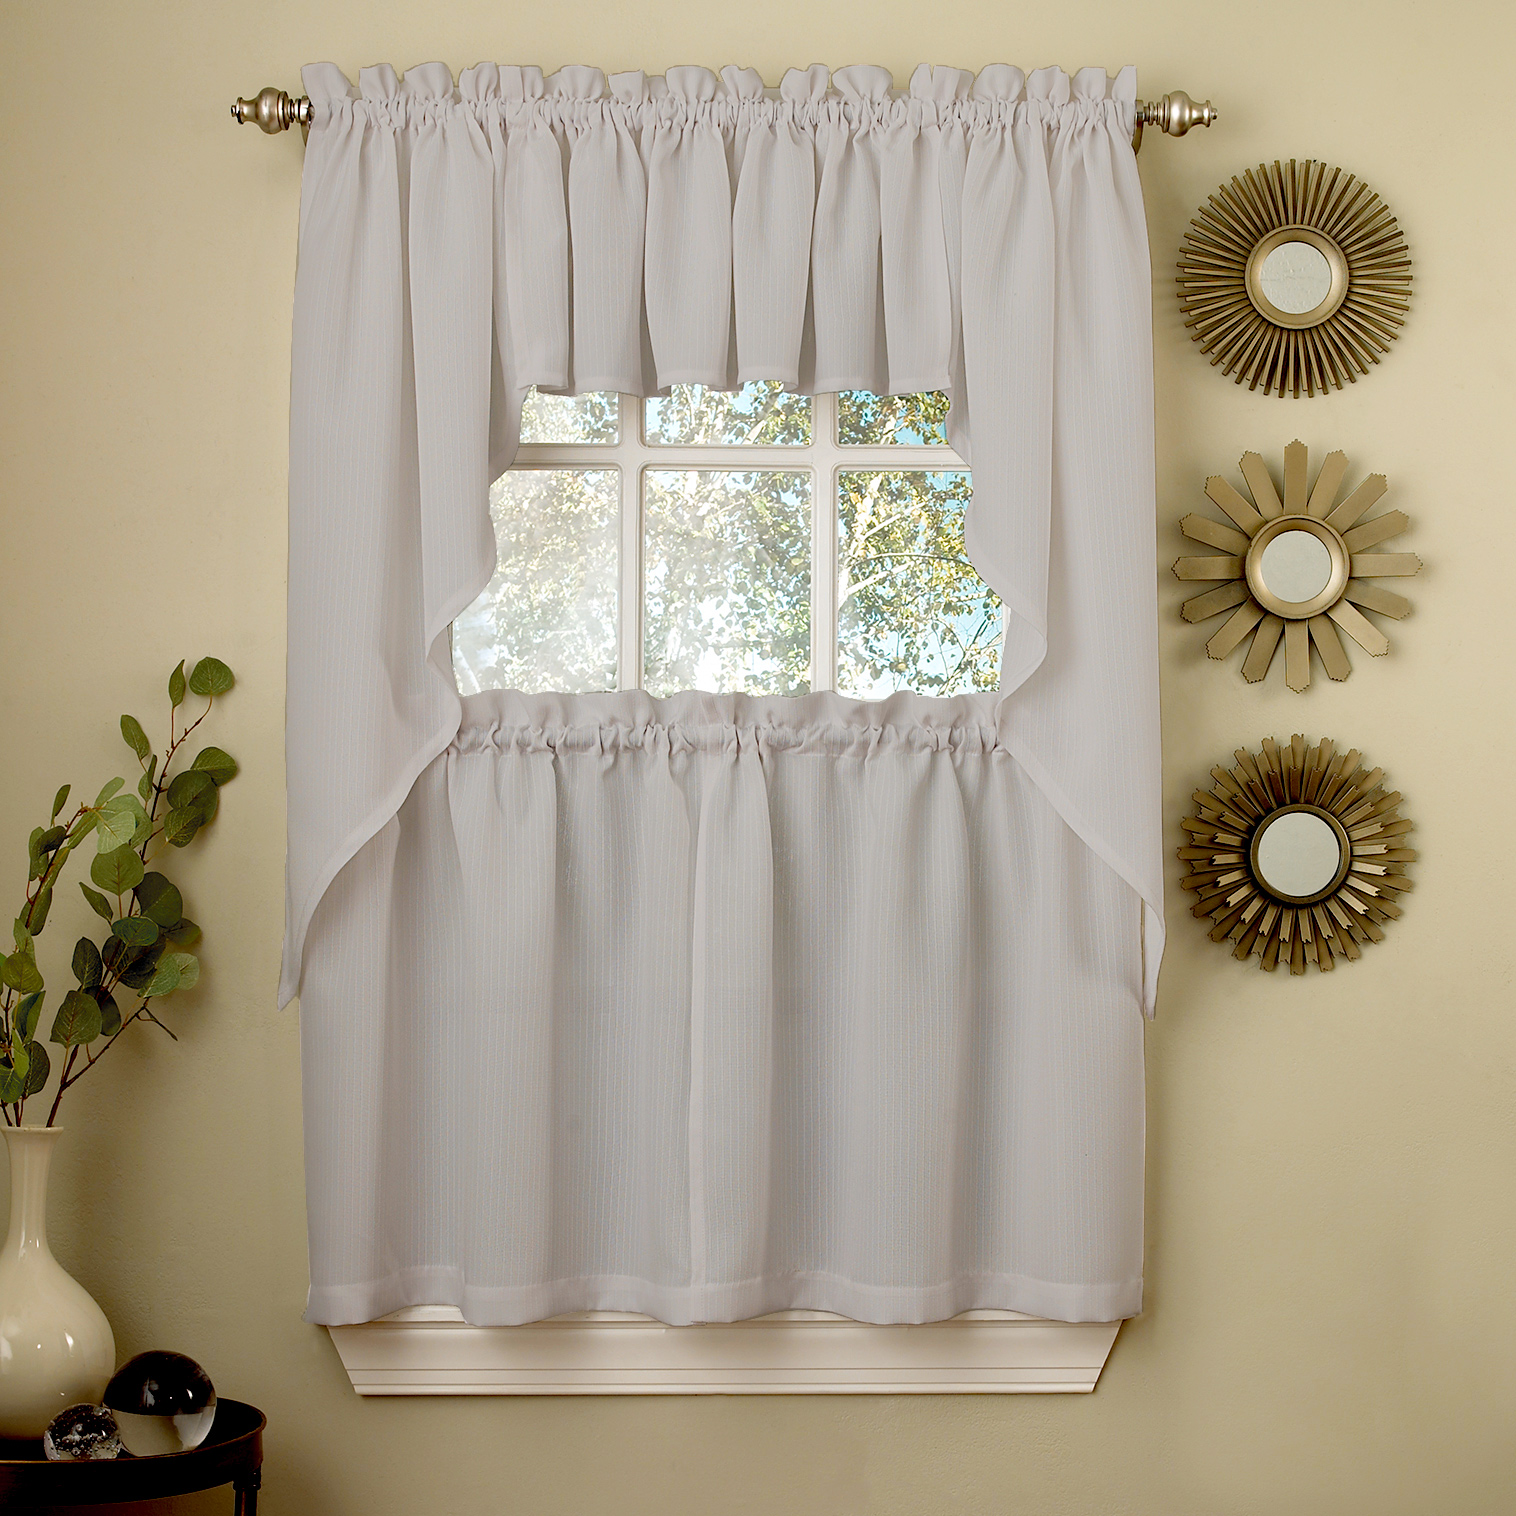 Details about Gray Opaque Solid Ribcord Kitchen Curtains Choice of Tier  Valance or Swag